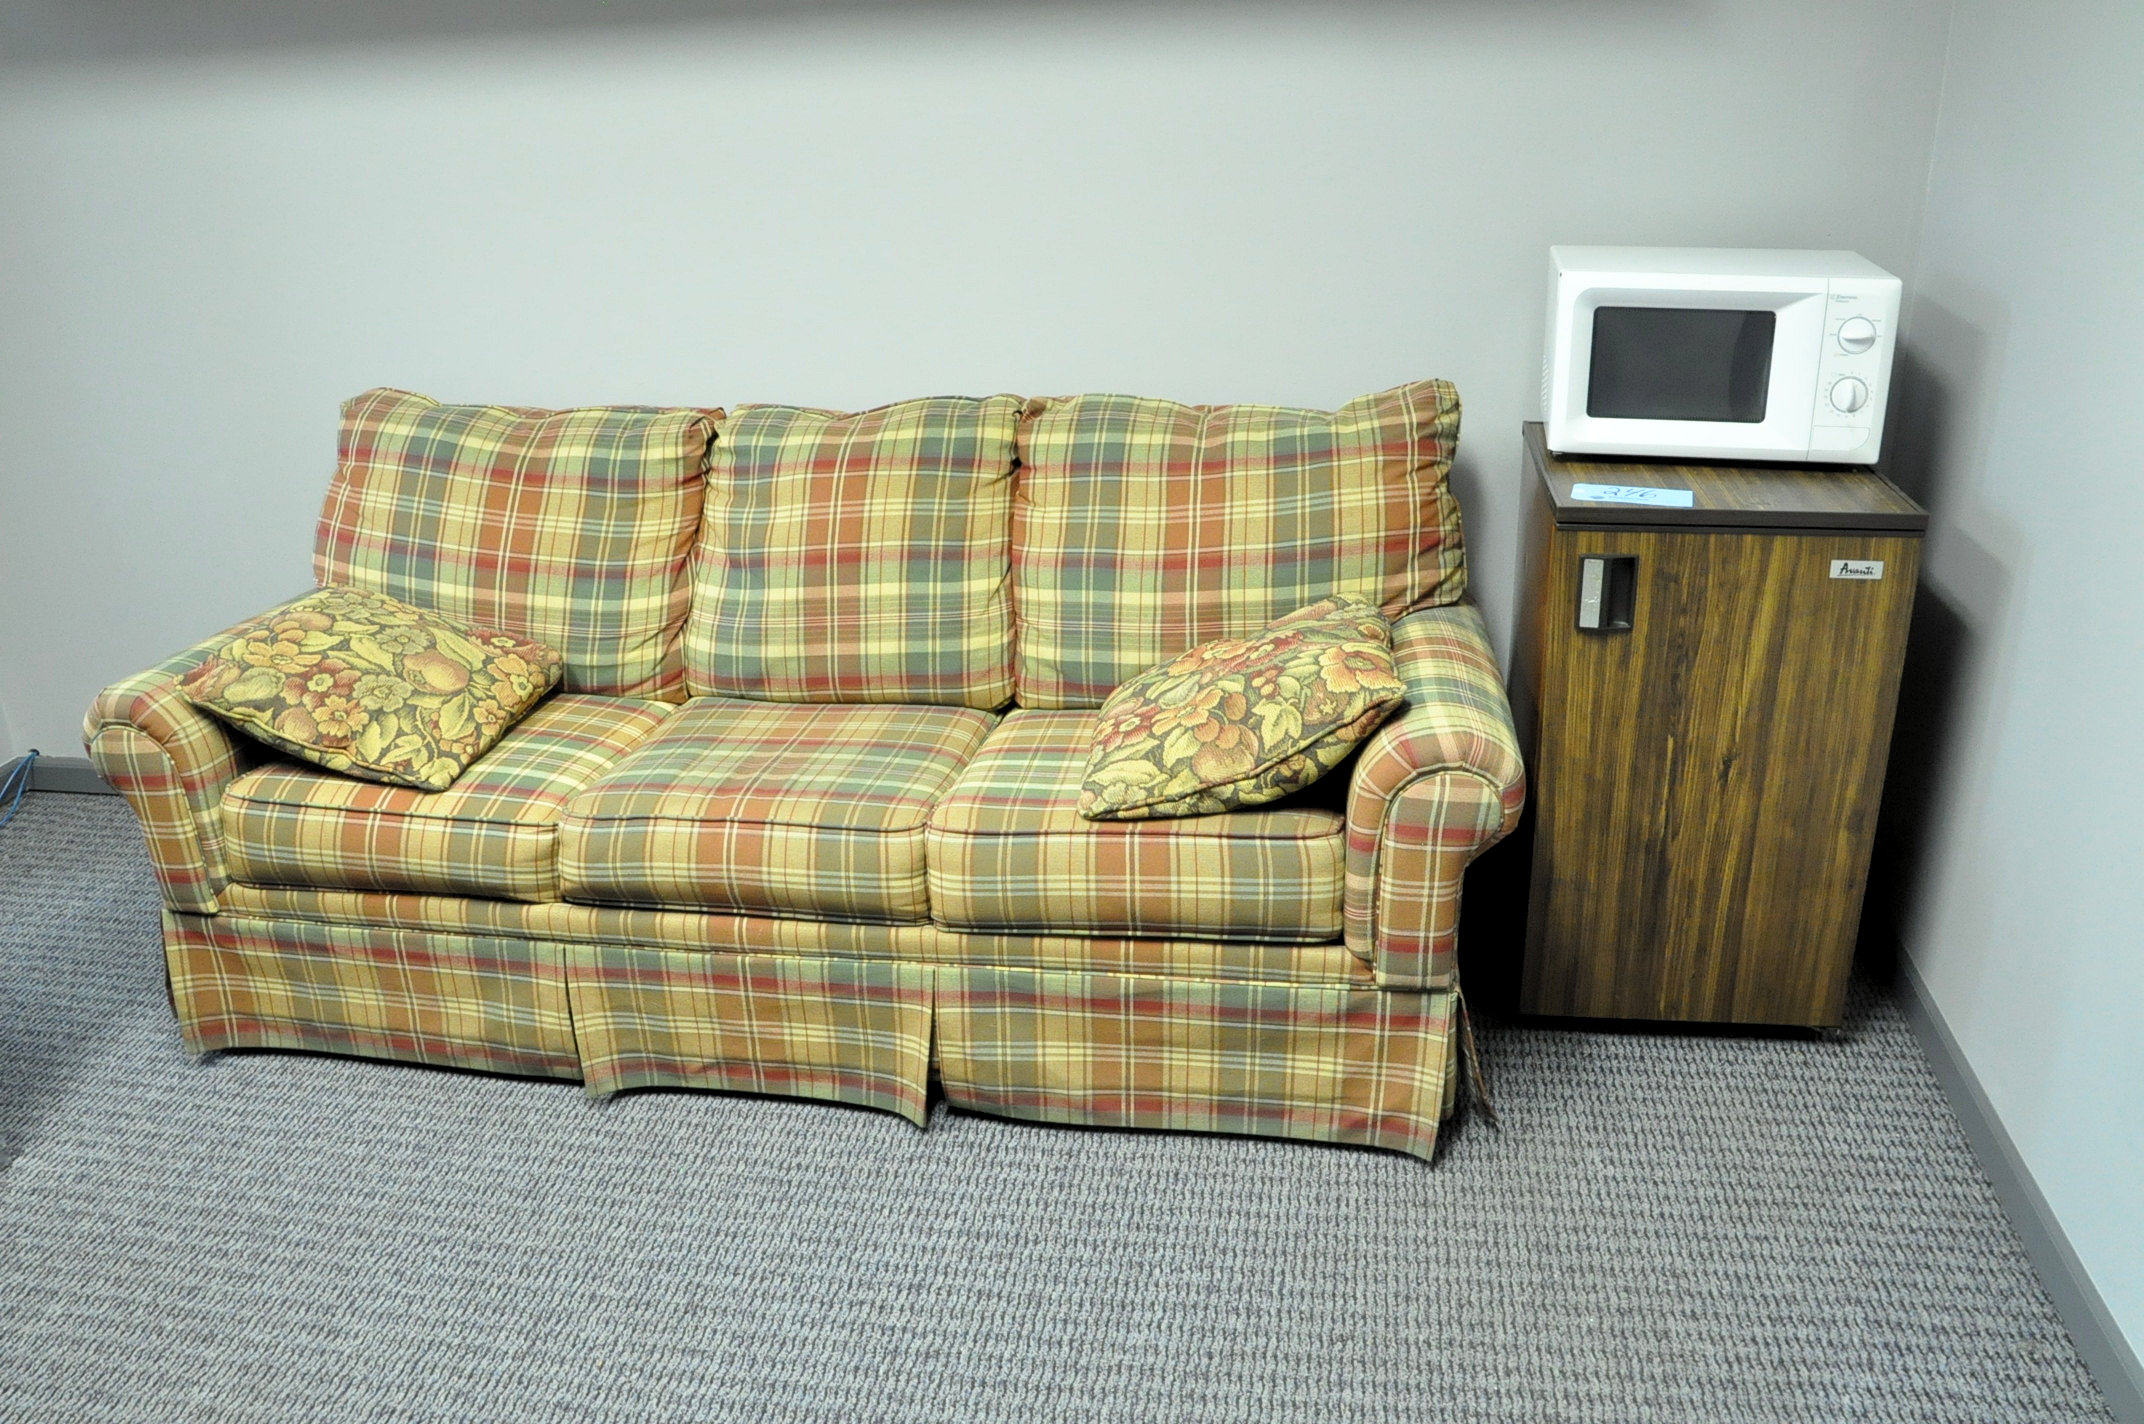 Sofa with Refrigerator and Microwave